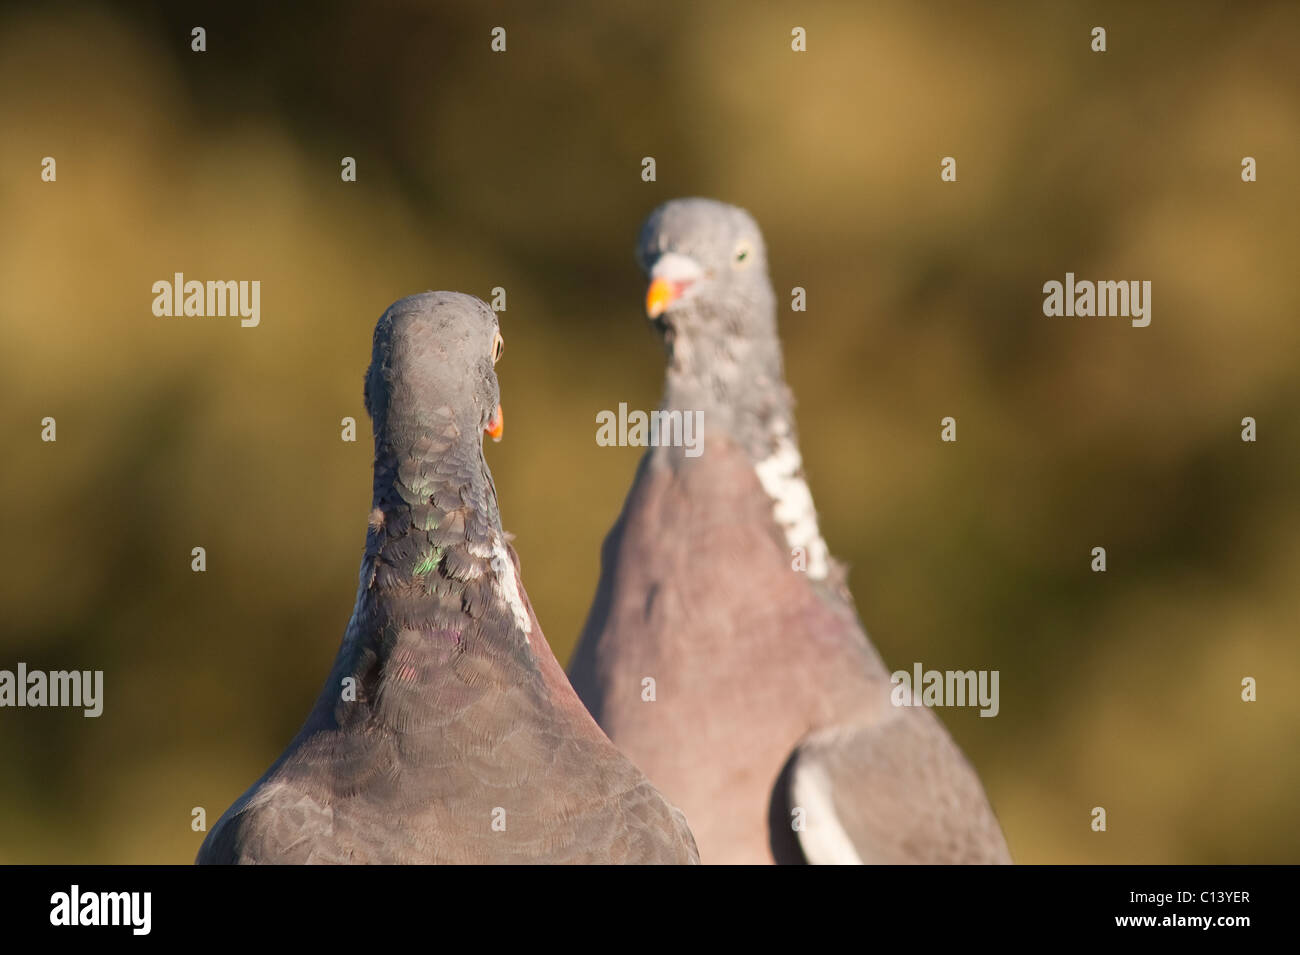 A pair of Woodpigeon (Columba palumbus) squaring up to one another squabling over food in the uk - Stock Image